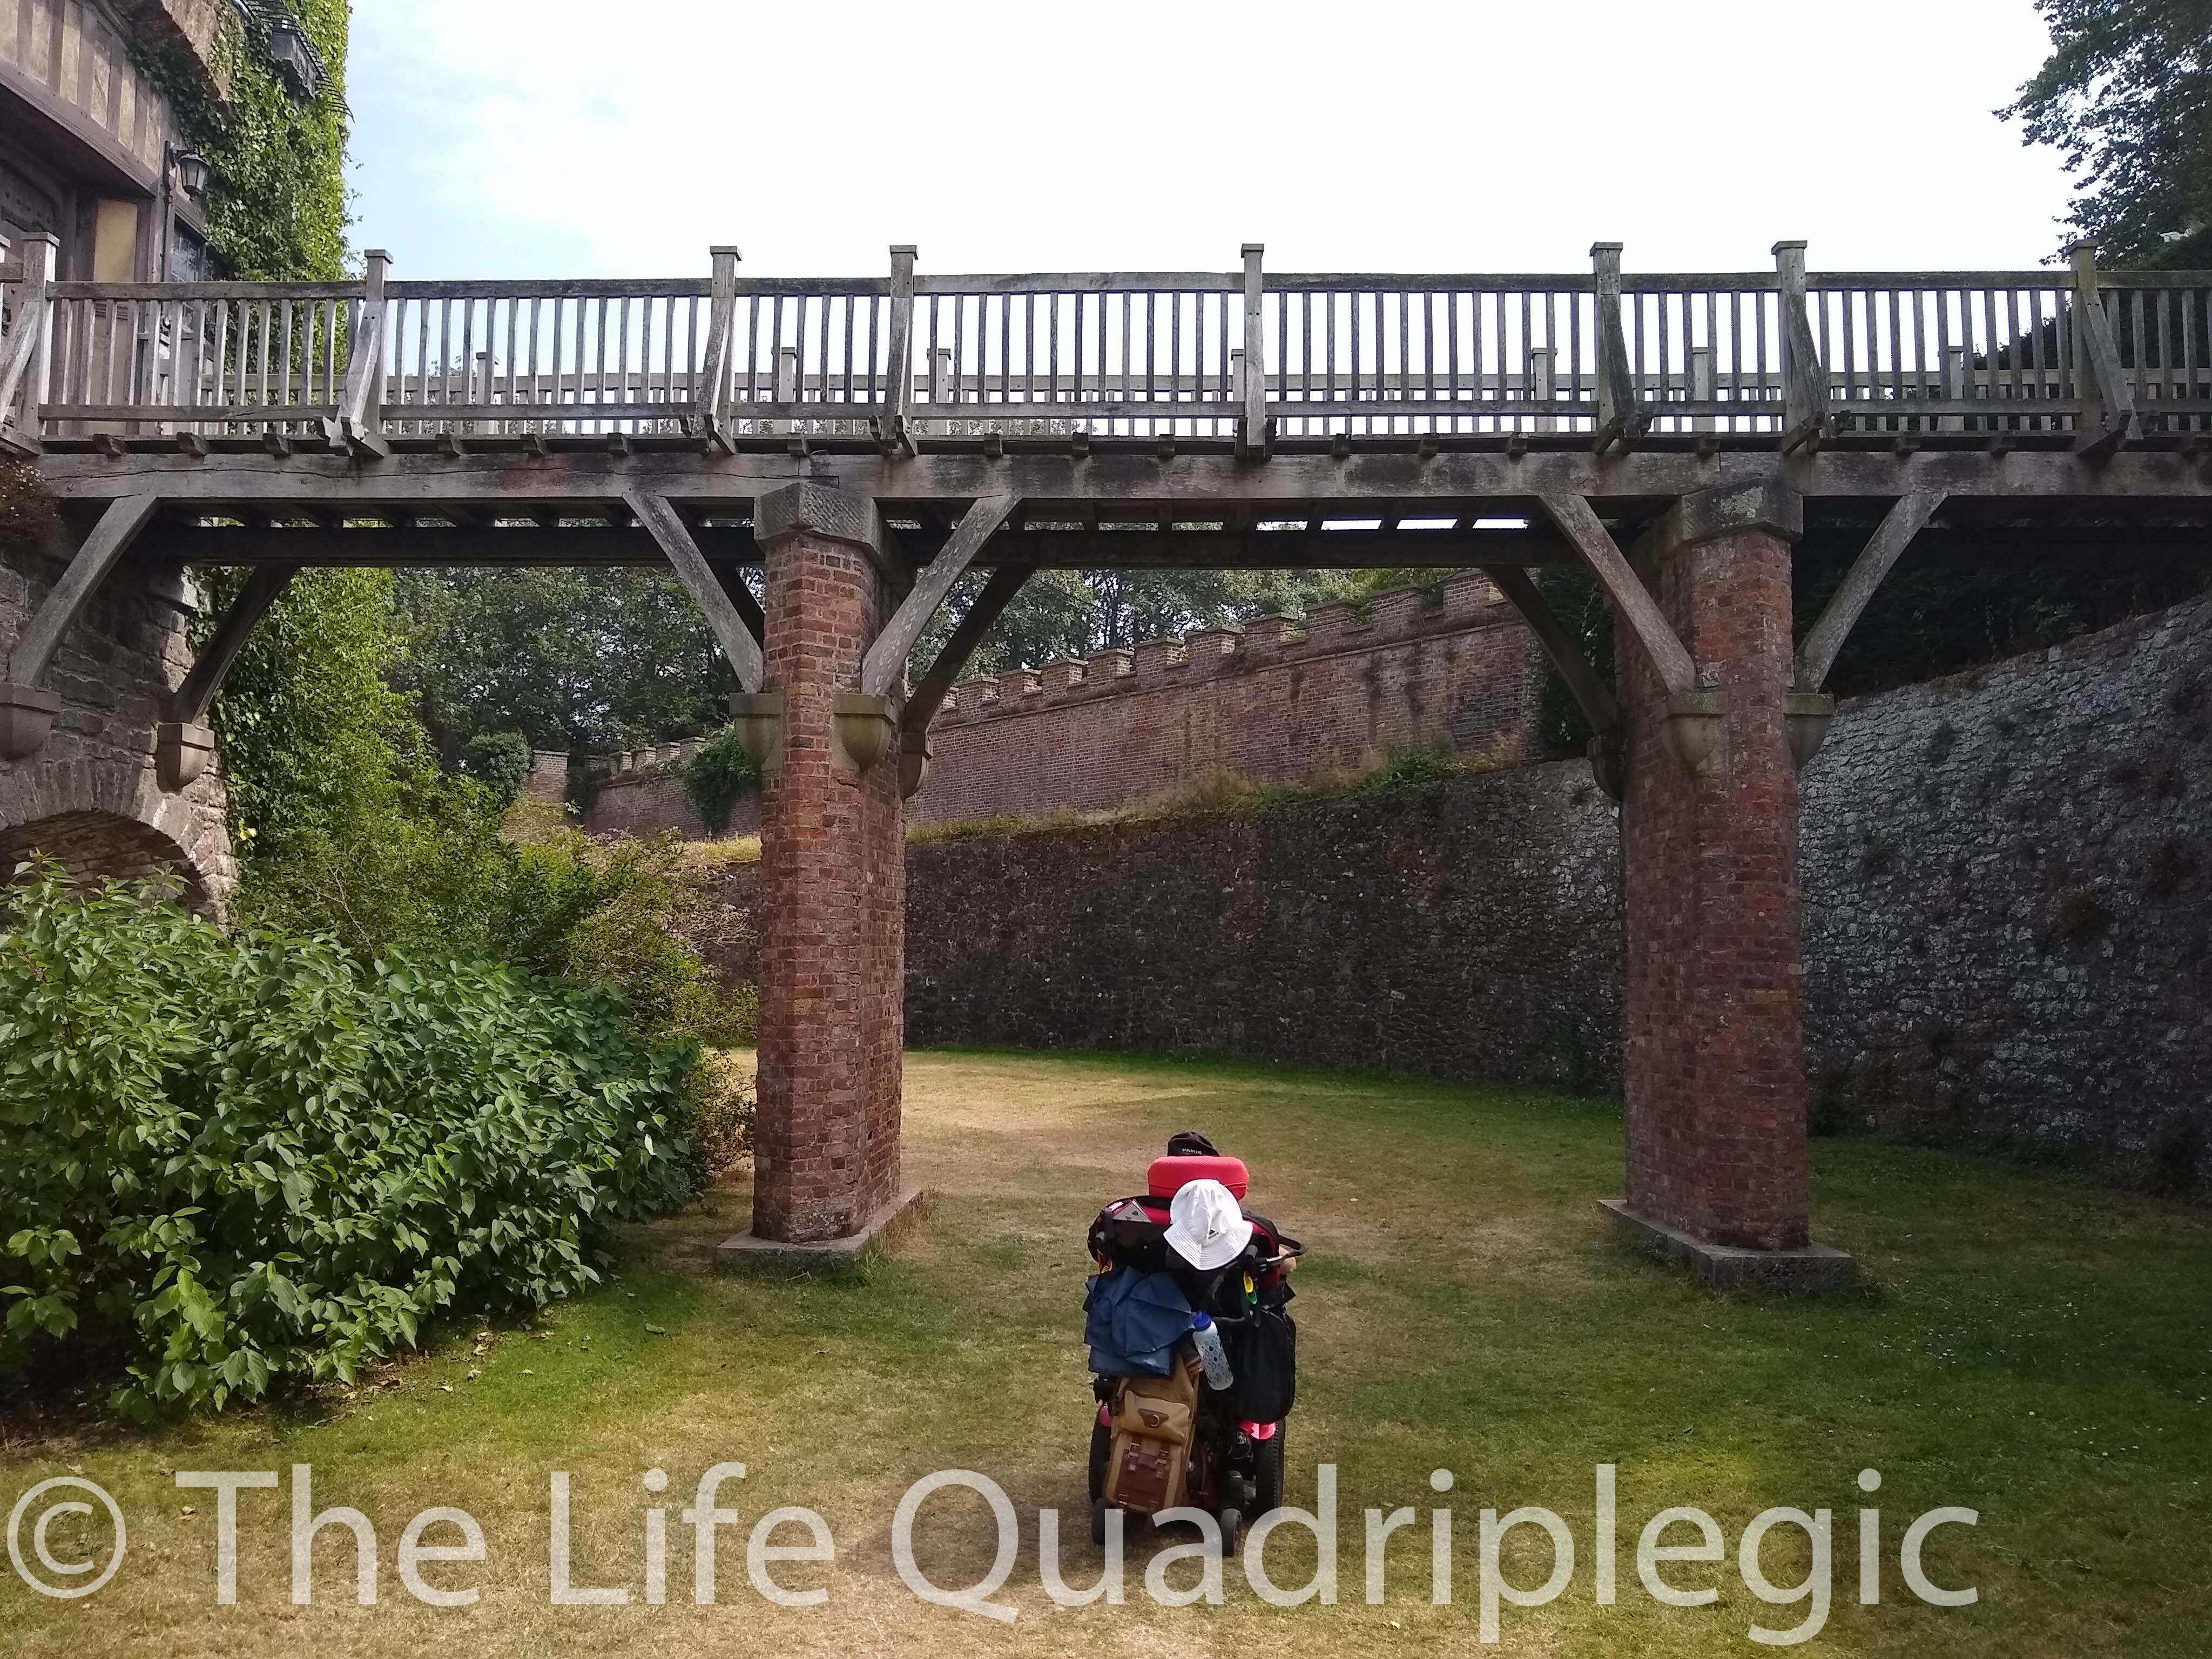 A Powerchair user sits on the grass in the castle moat with a bridge in front of him running from one side of the most to the other.